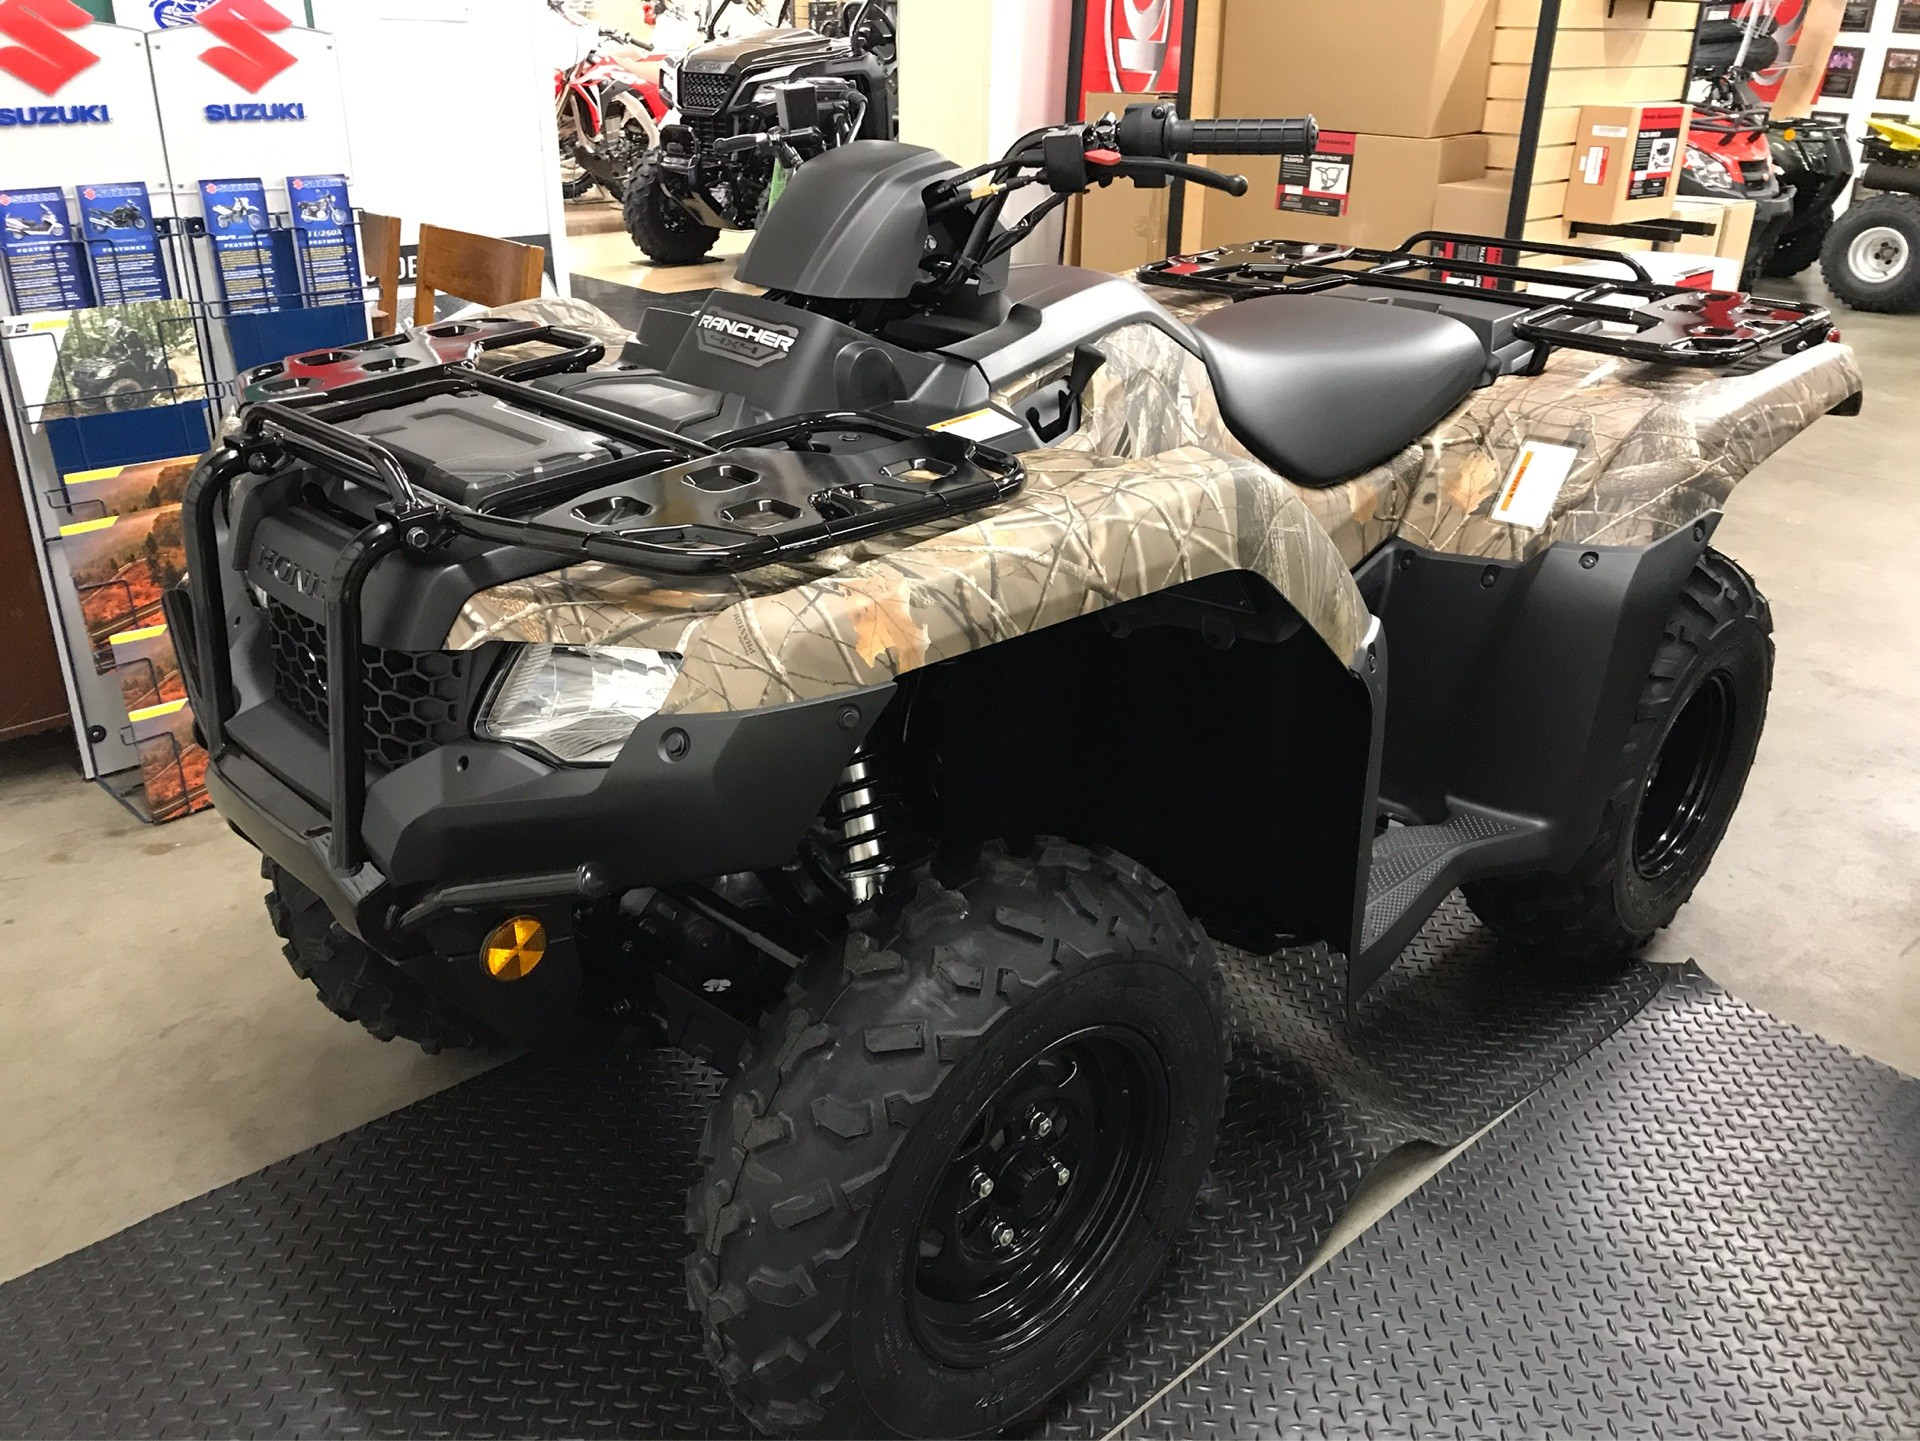 2020 Honda FourTrax Rancher 4x4 in Sanford, North Carolina - Photo 5